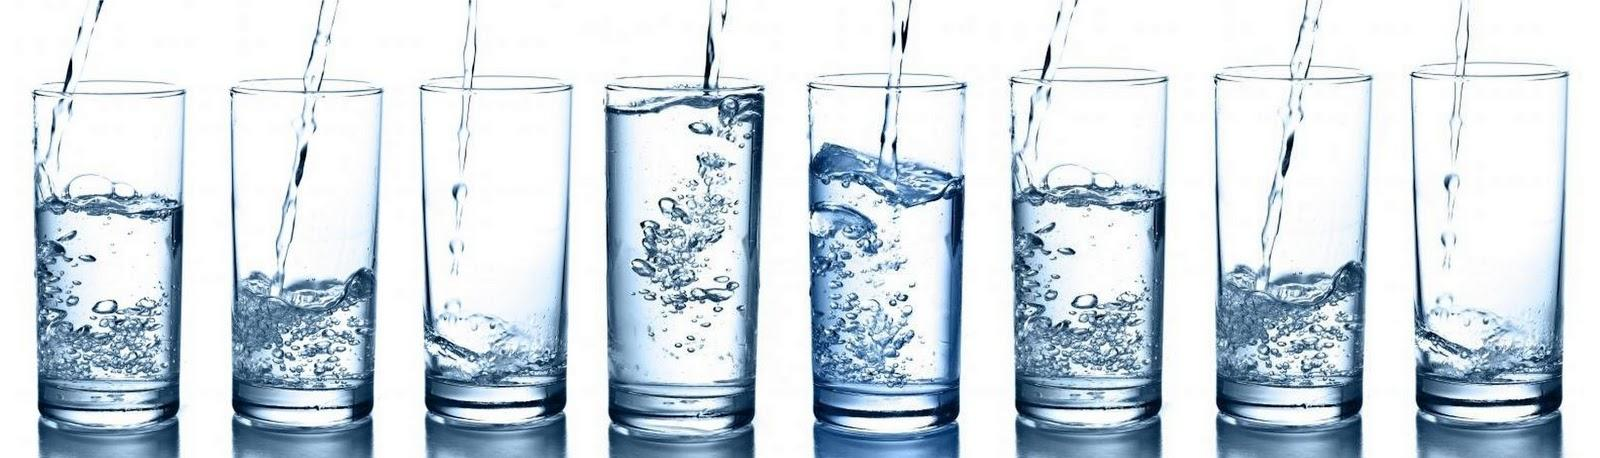 I Drank Only Water For 10 Days, Here's What Happened